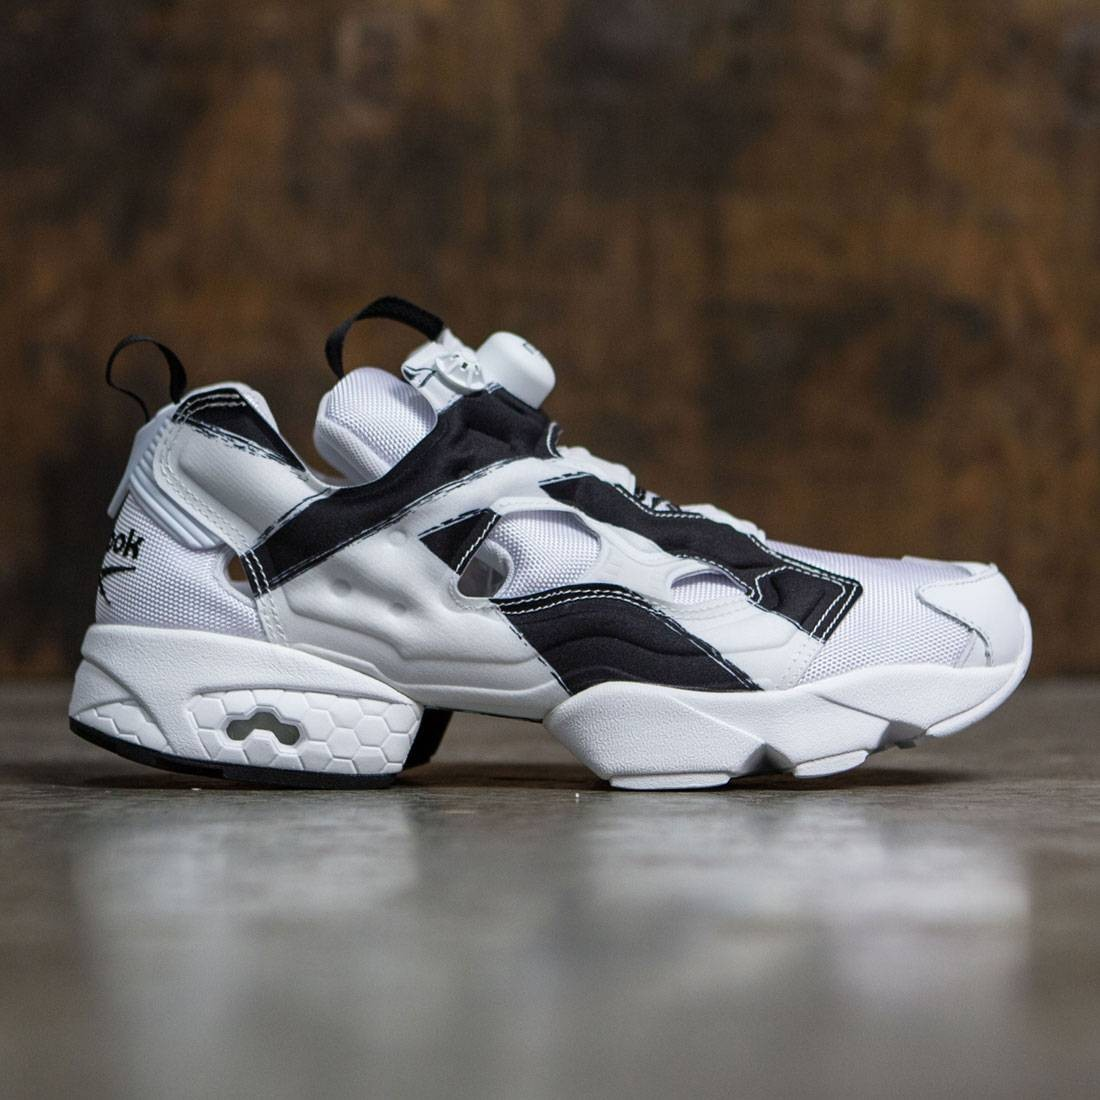 Reebok Men InstaPump Fury Overbranded (white / black)